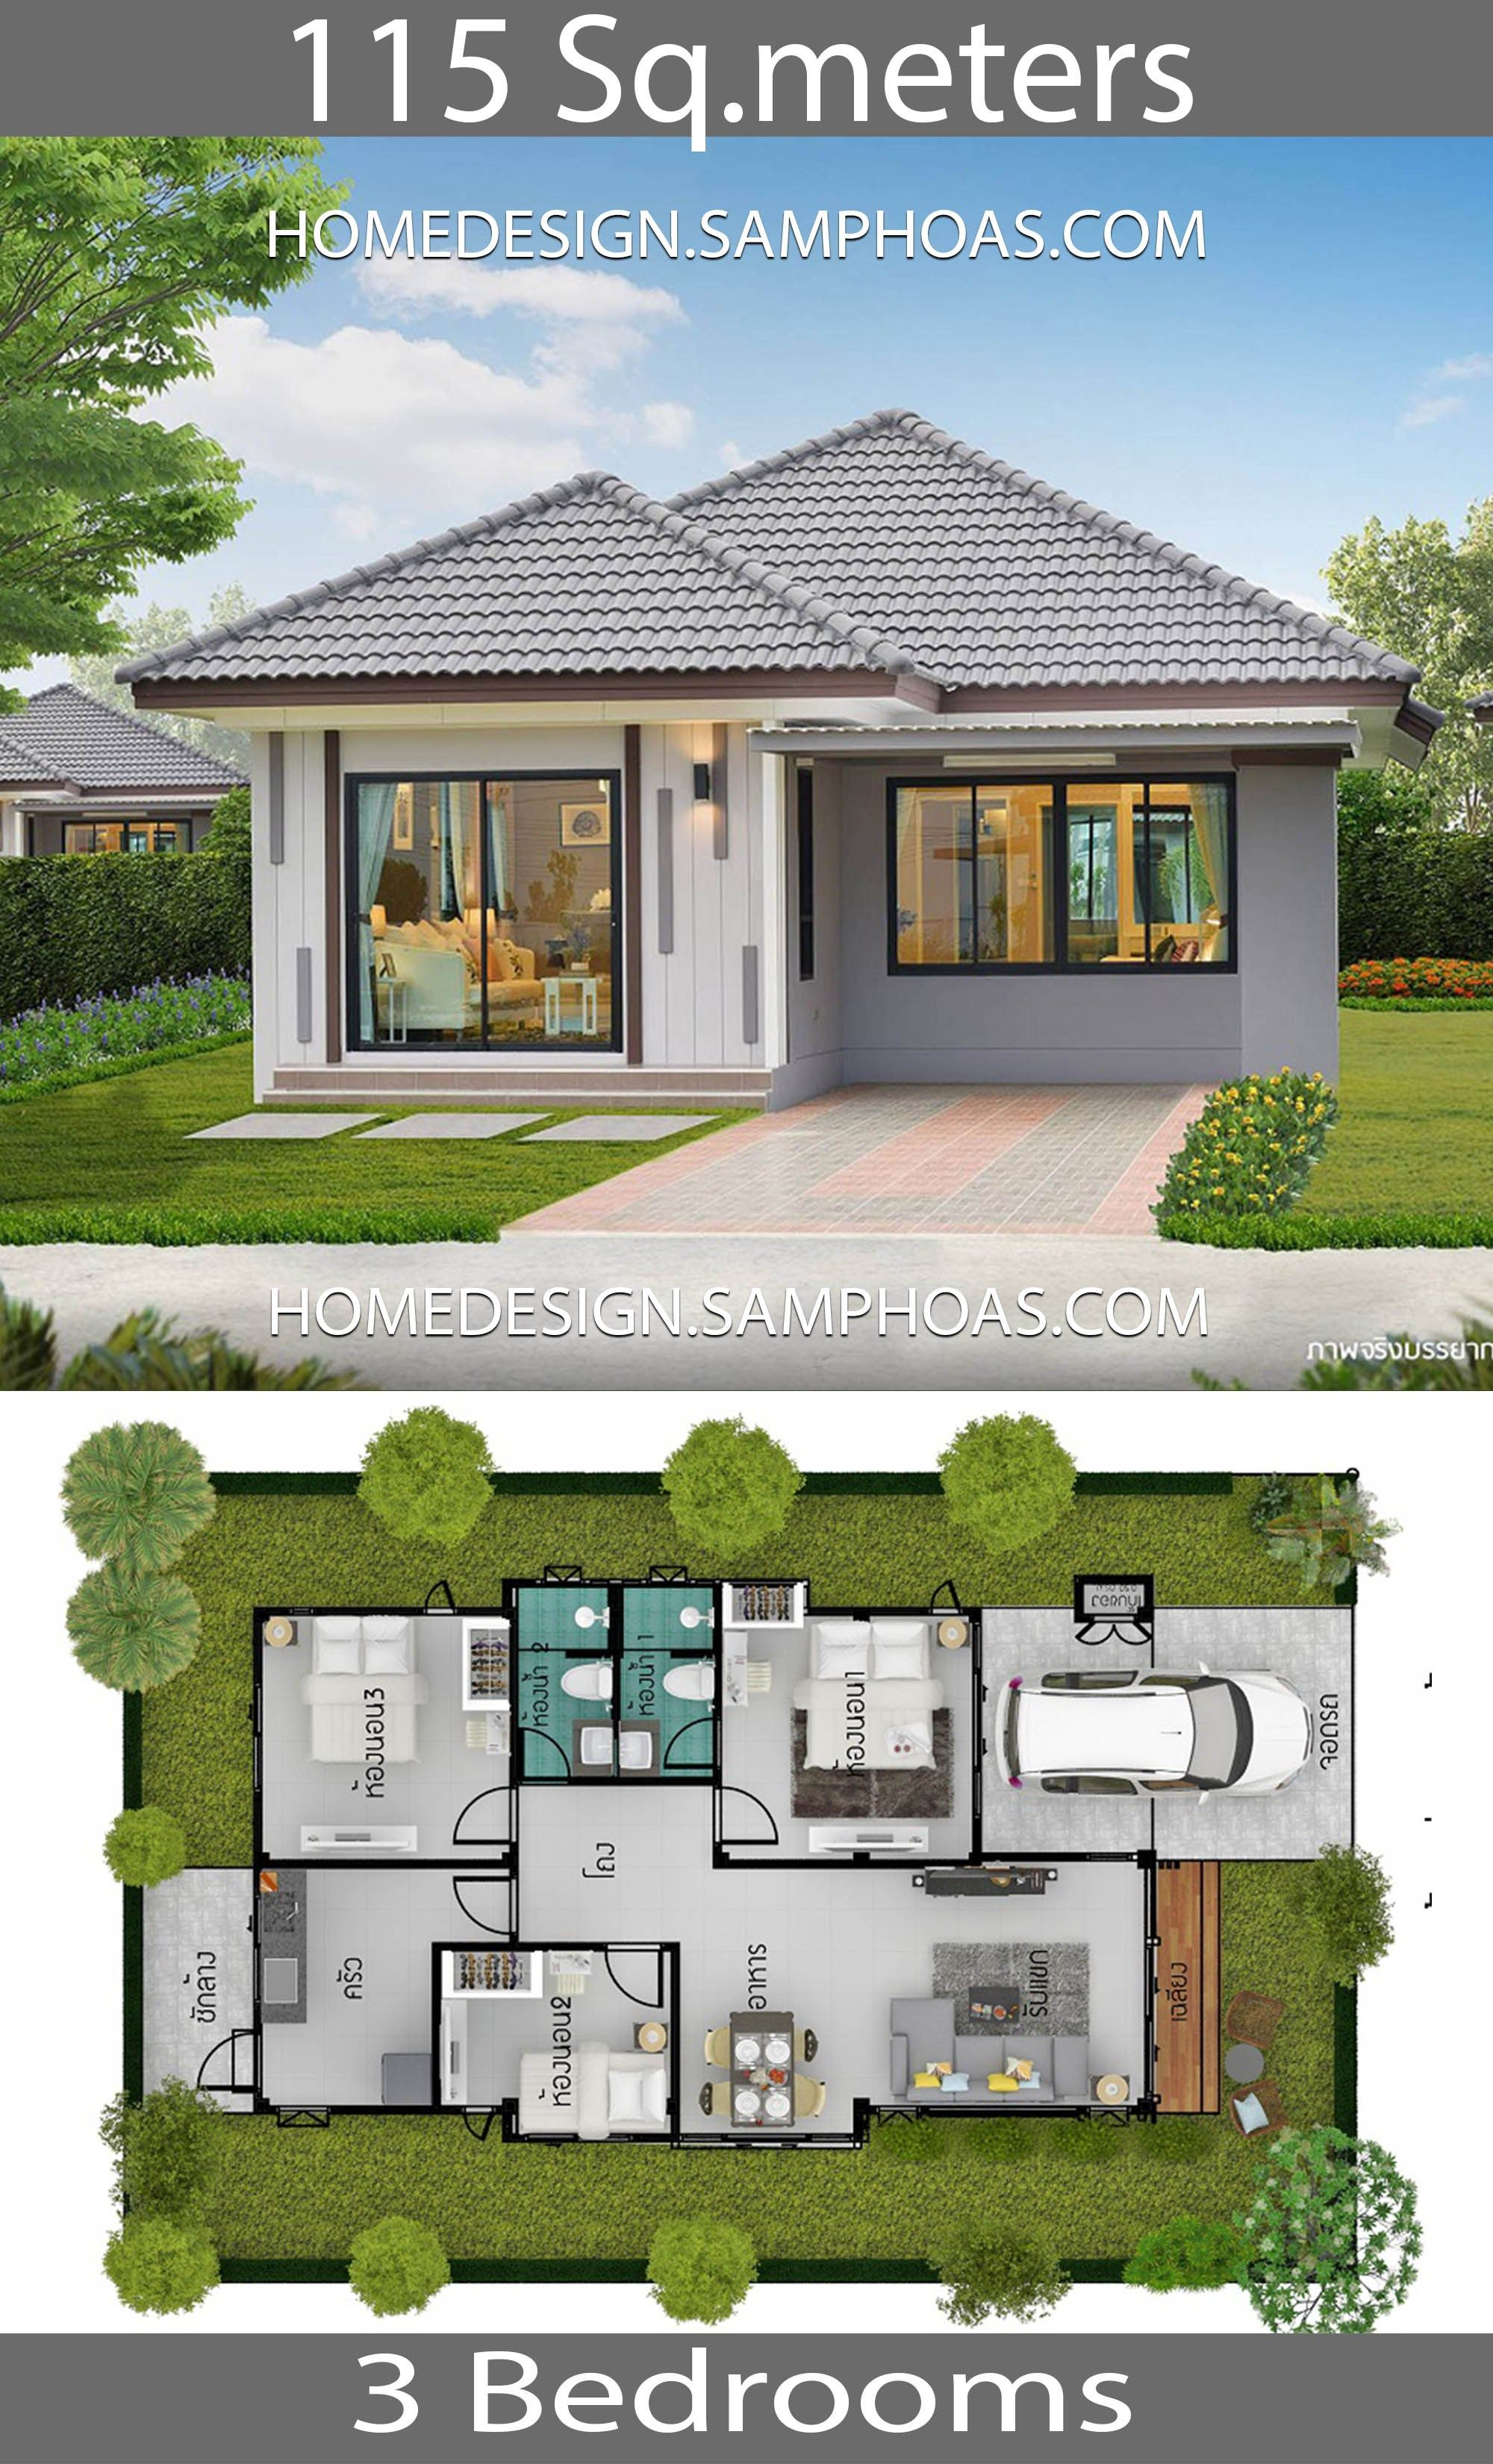 115 Sqm 3 Bedrooms Home Design Ideahouse Description Ground Level Three Bedrooms One Car Parking L Beautiful House Plans House Plan Gallery Model House Plan